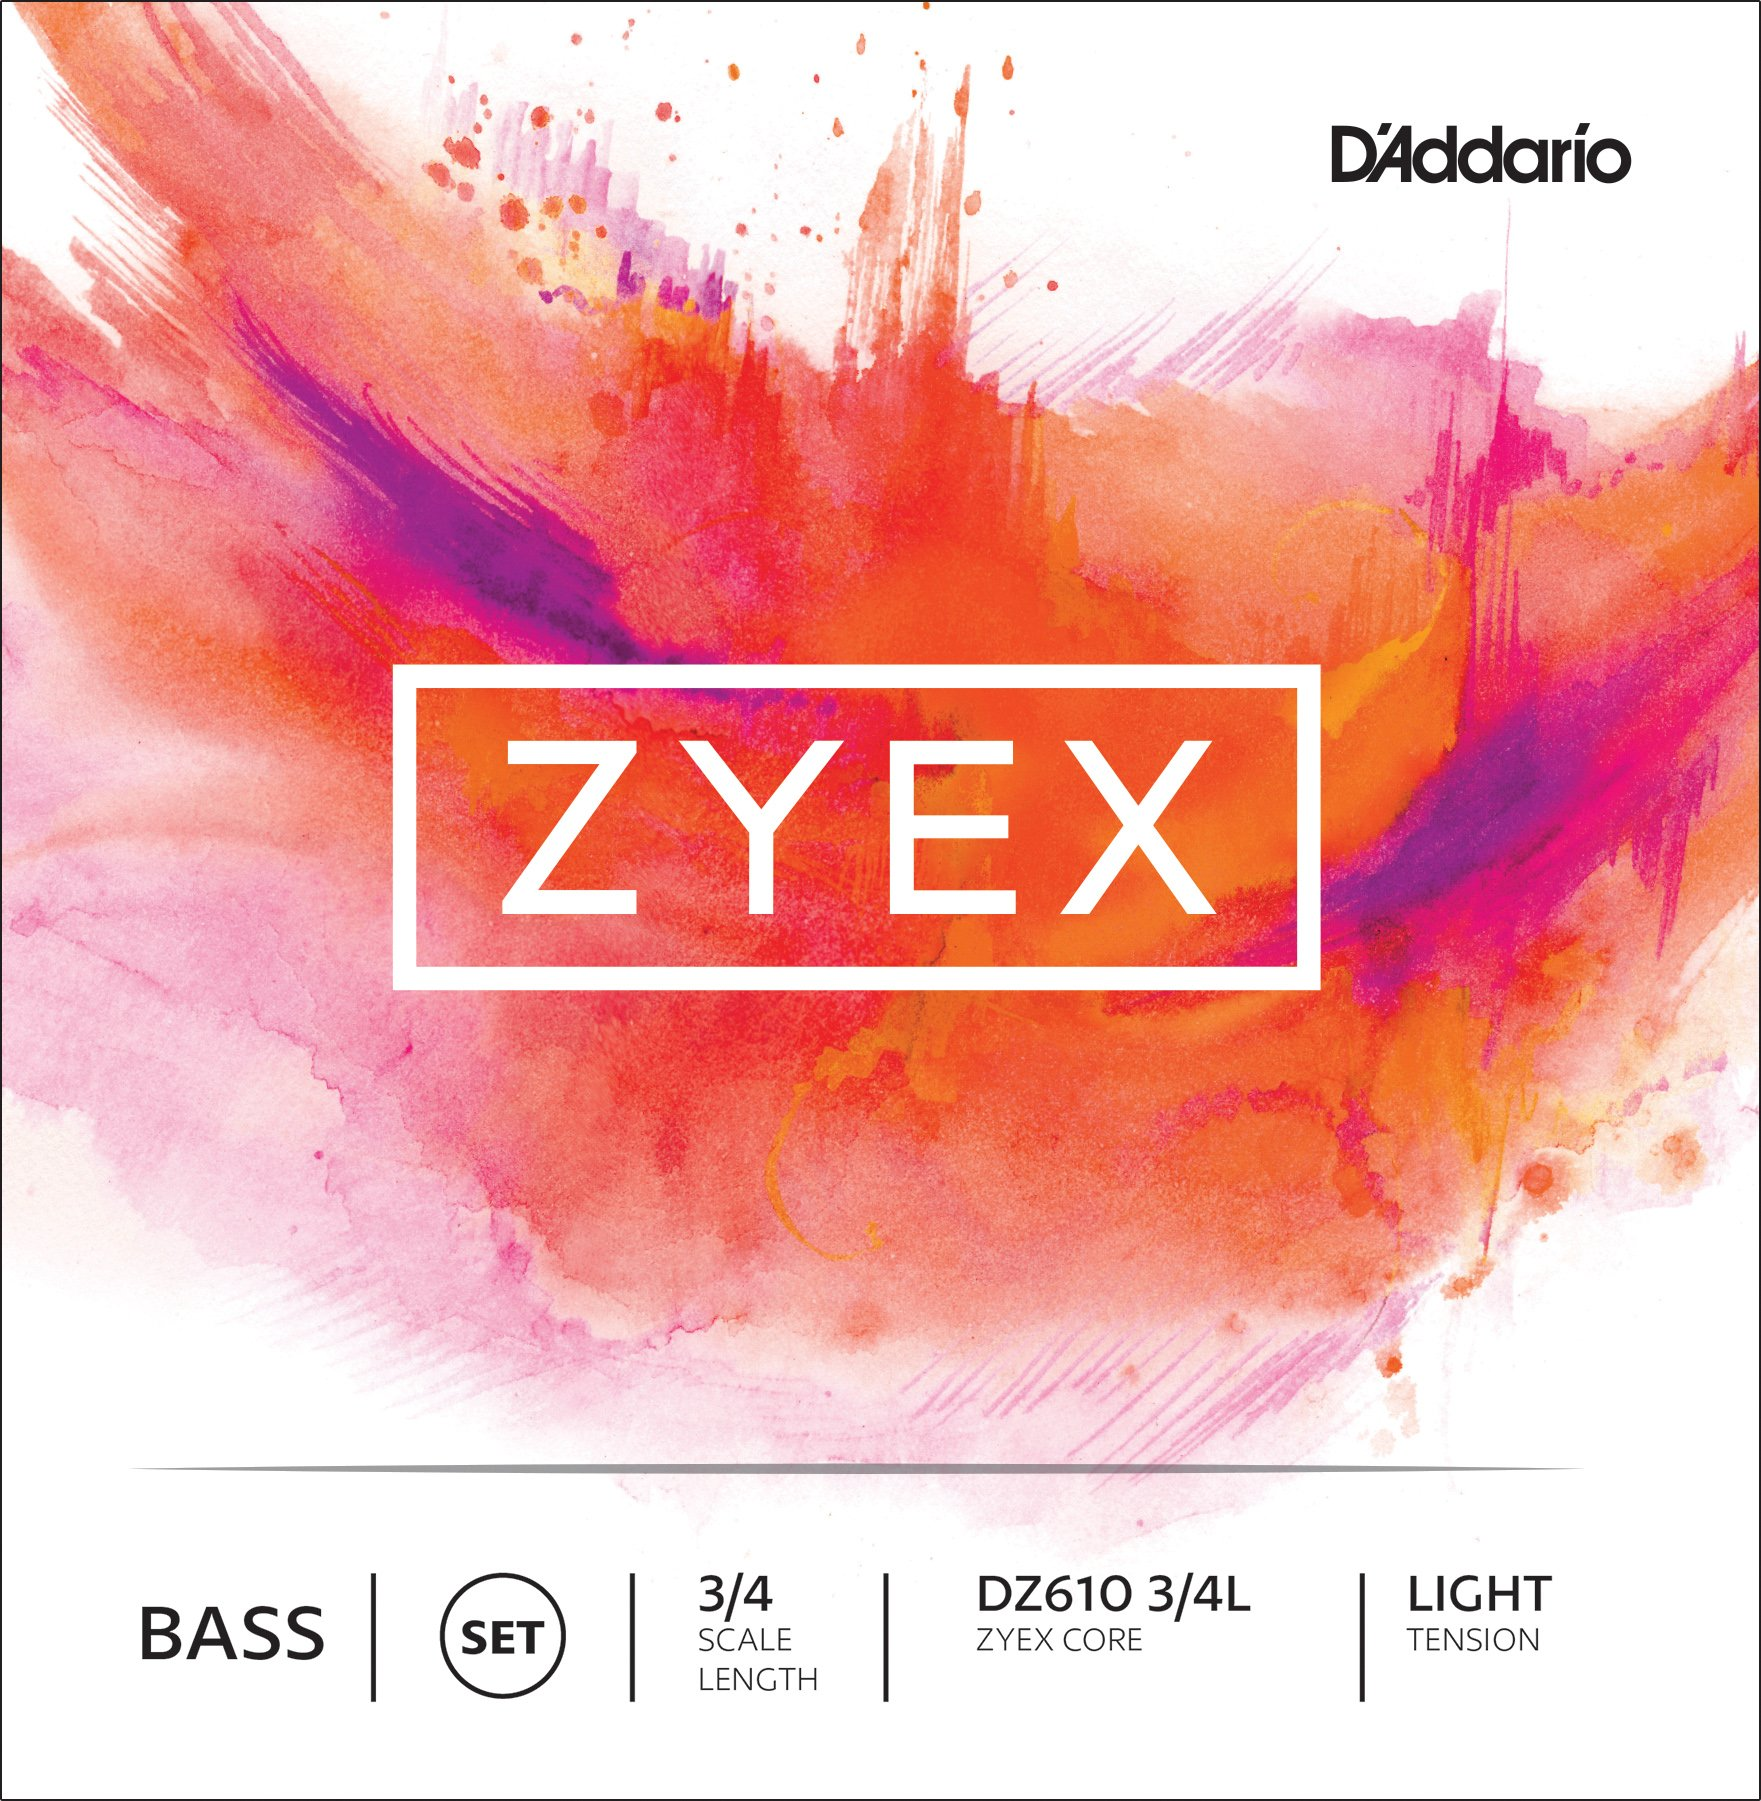 D'Addario Zyex Bass String Set, 3/4 Scale, Light Tension